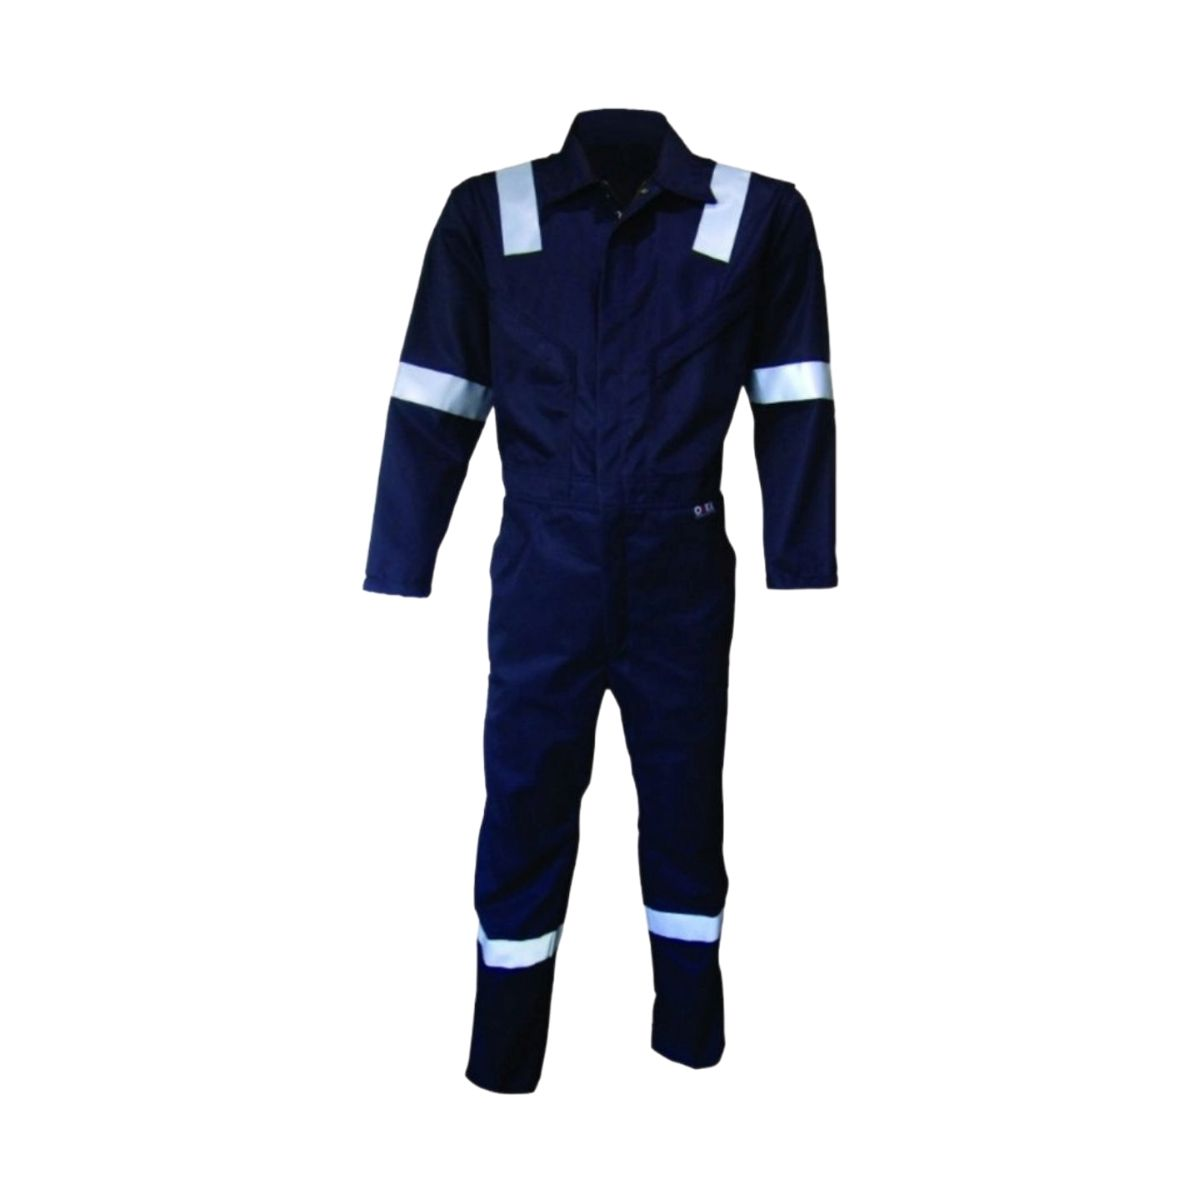 AS7335 ORKA Tropic II Lightweight FR AS Coverall - Navy